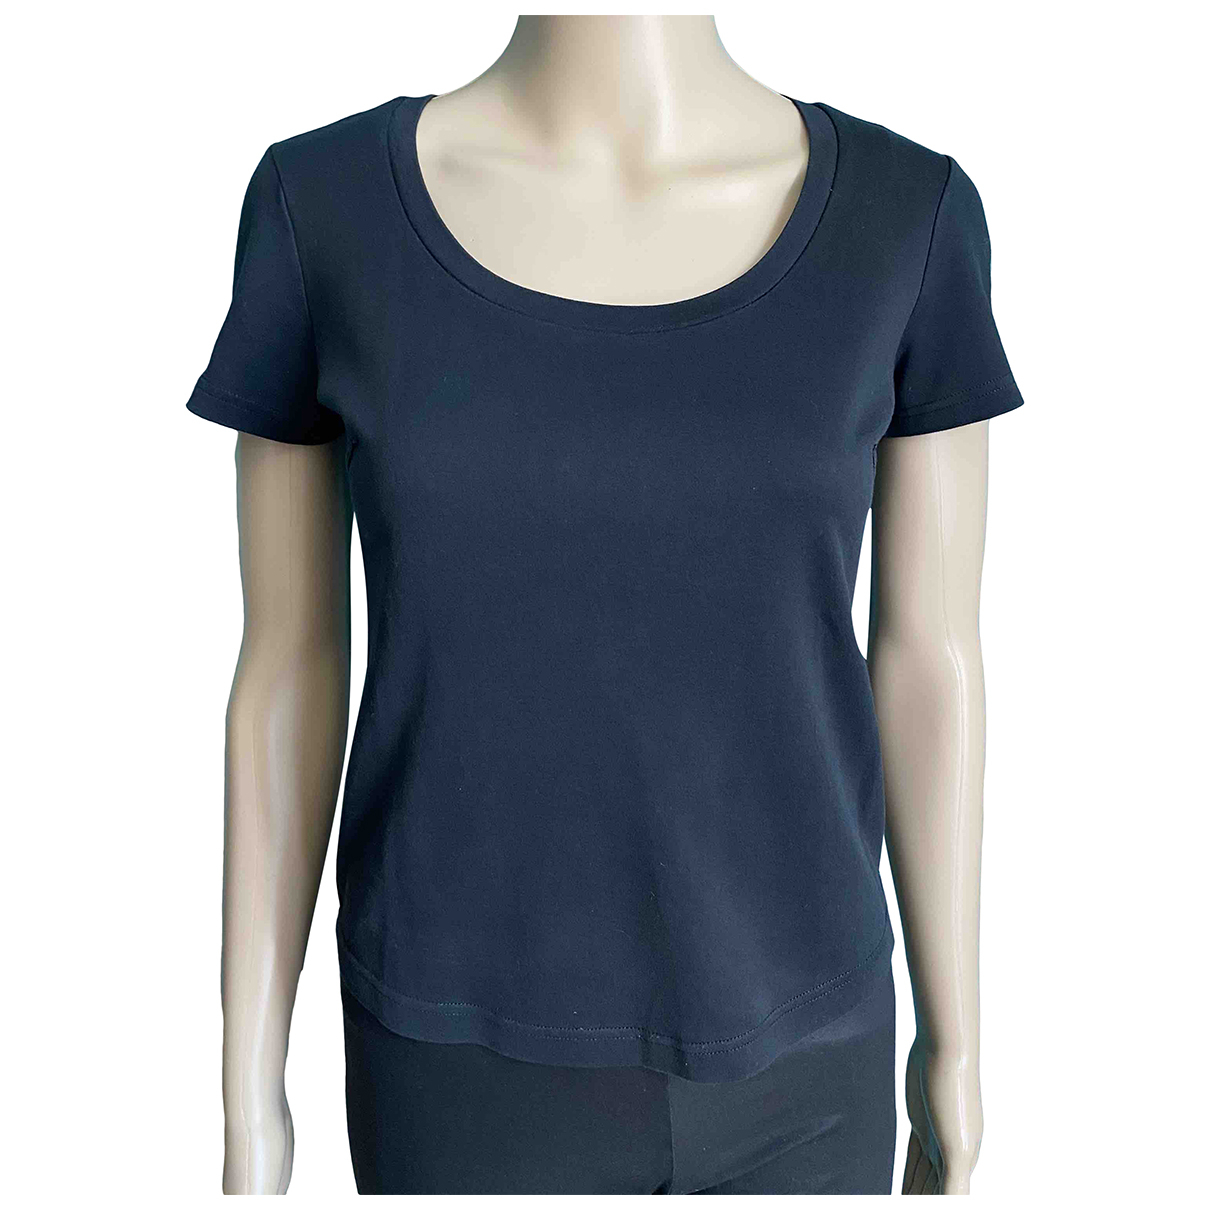 Prada \N Black Cotton  top for Women S International